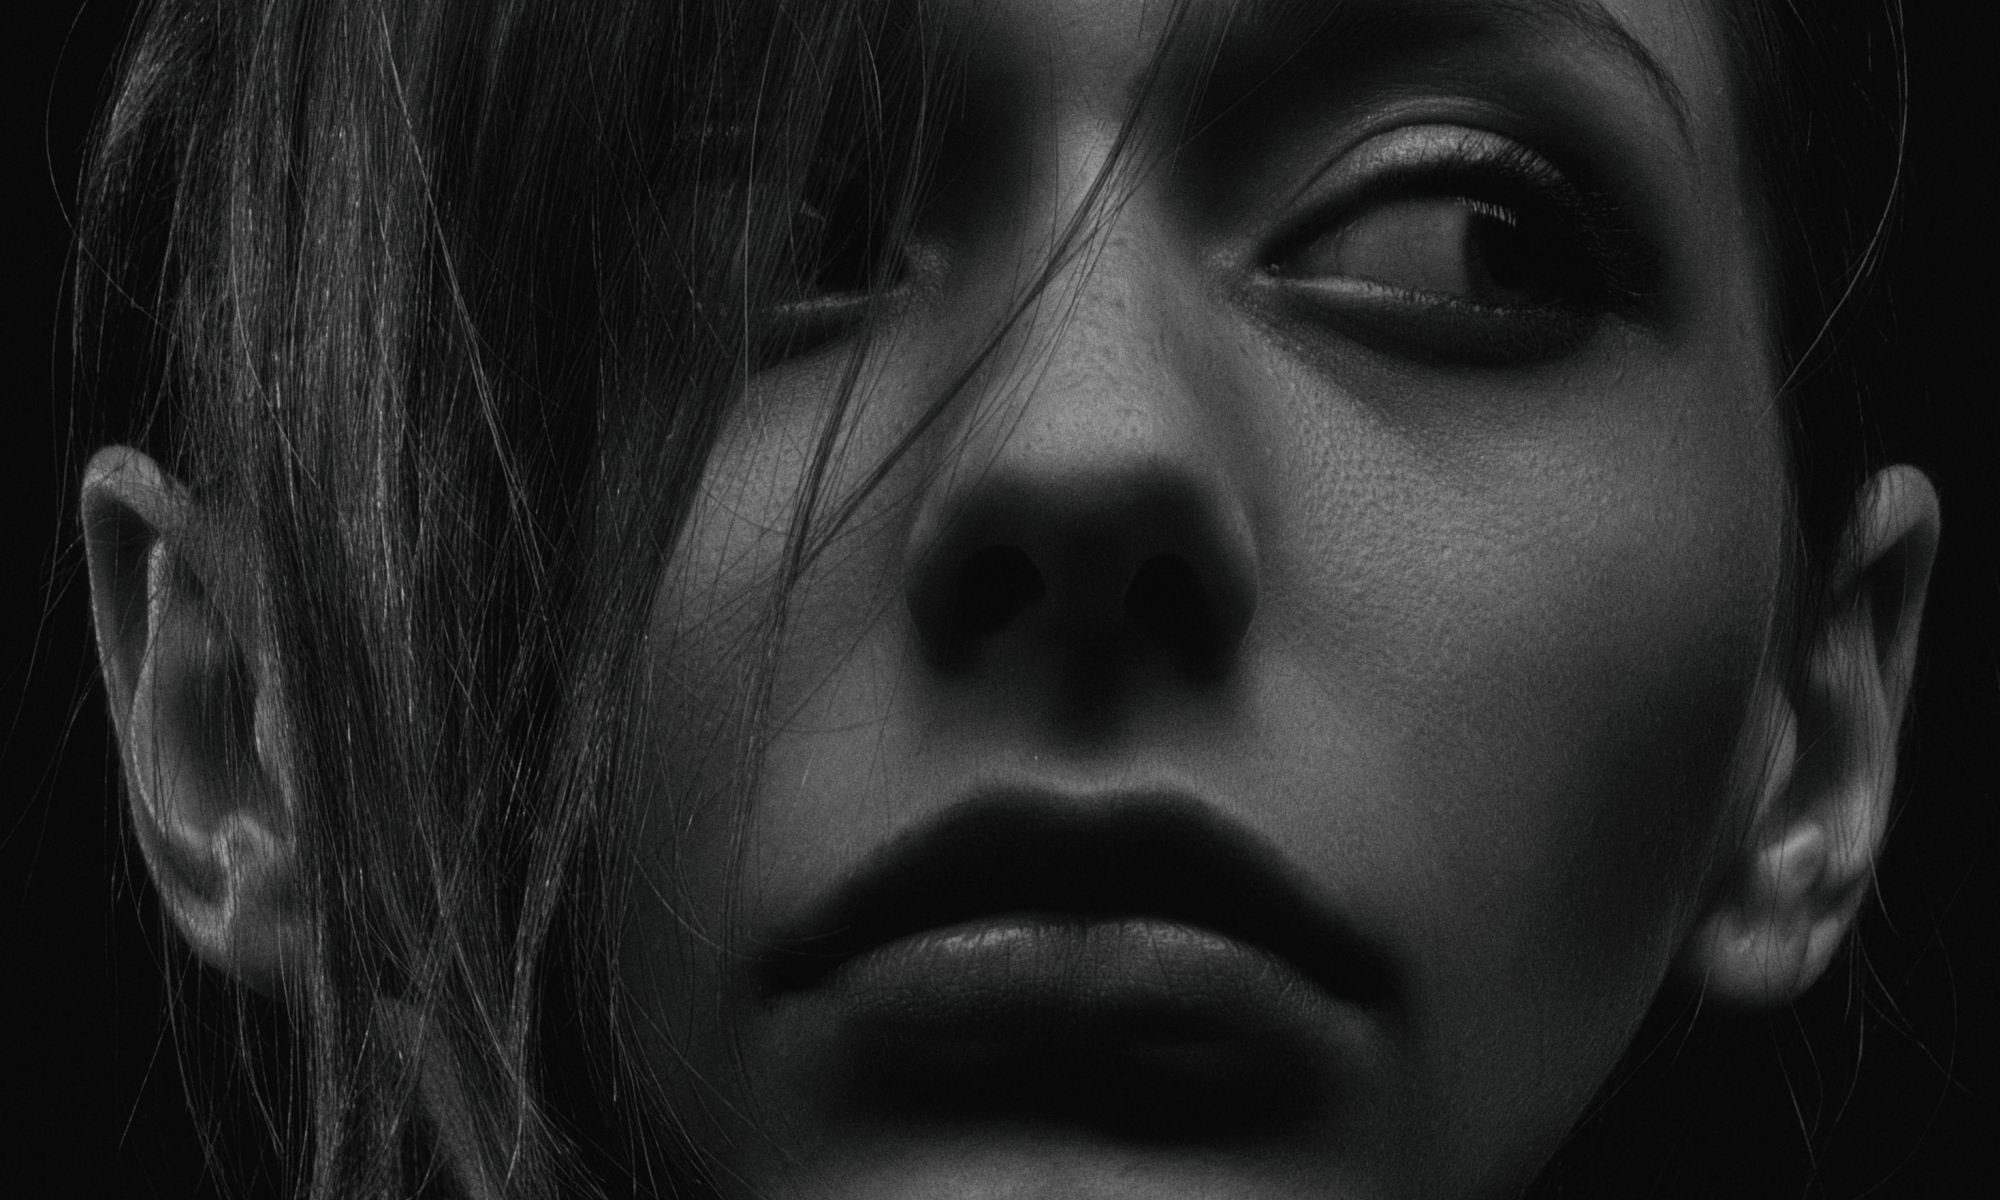 Grayscale photography of woman suffering from paranoid personality disorder